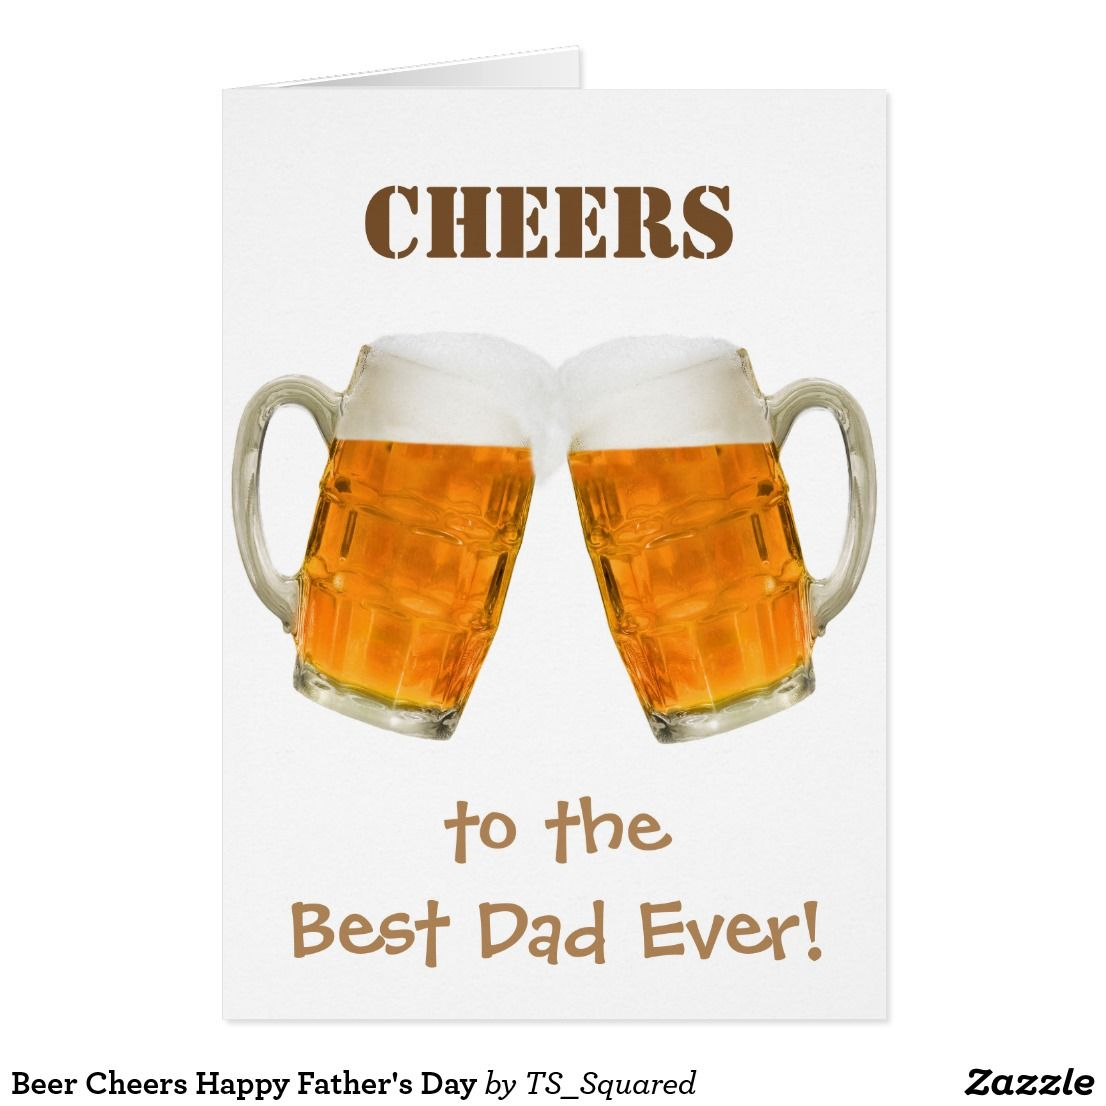 happy Father\u2019s Day from the reason you drink Father\u2019s Day beer steins